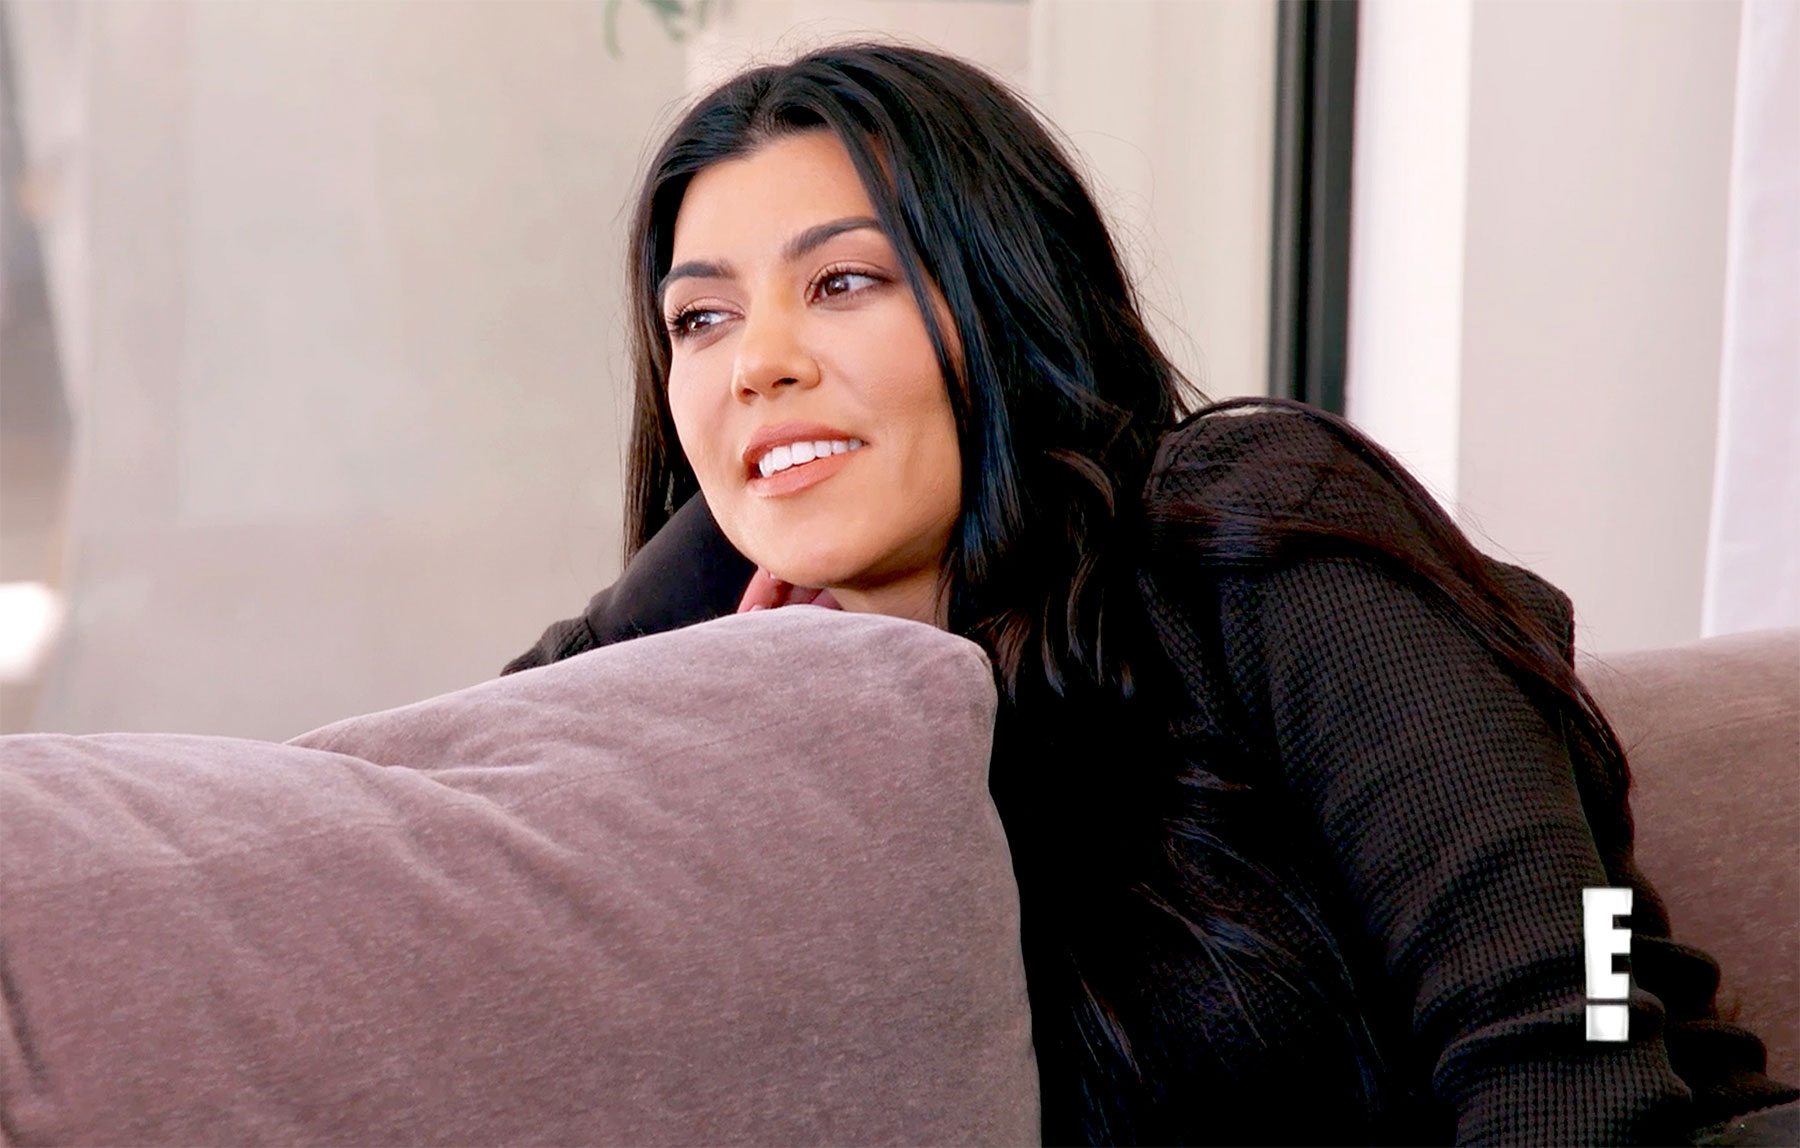 "Kourtney Kardashian - The former couple defined their relationship rules in a March 2018 episode of KUWTK in which Kourtney asks Scott not to go into her bedroom without permission. The businessman agrees: ""There's obviously some boundaries that we both need to respect, and I don't want you to be uncomfortable."""